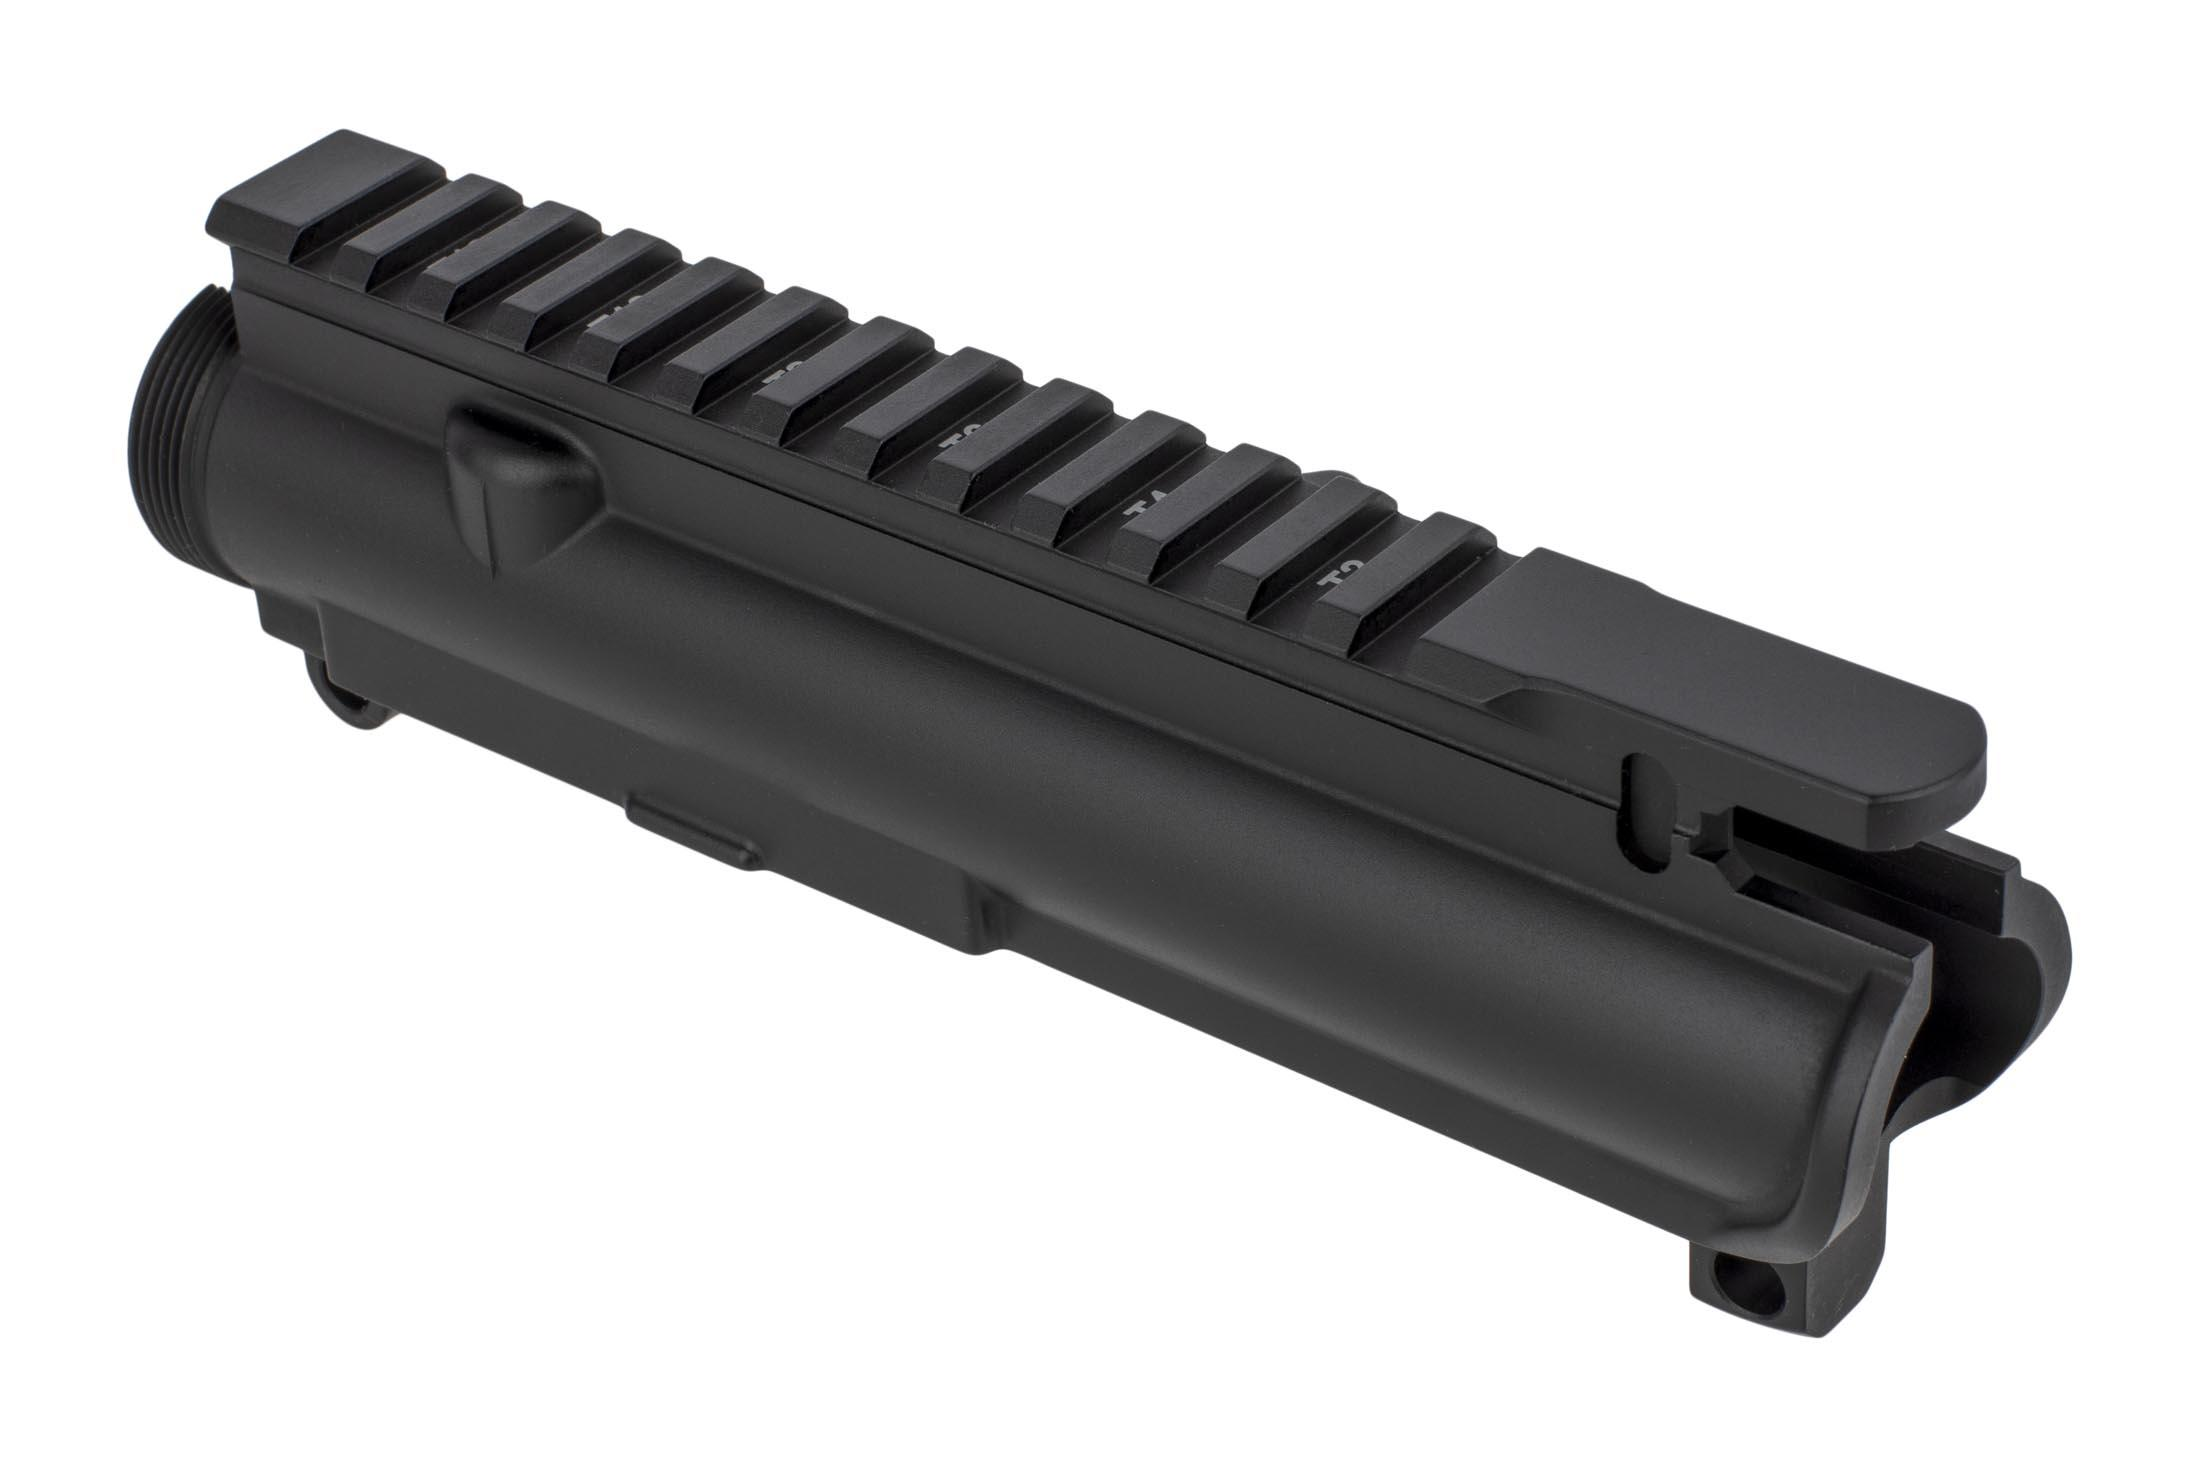 Aero precision stripped slickslide AR 15 upper with laser engraved t-marks features a smooth matte anodized finish